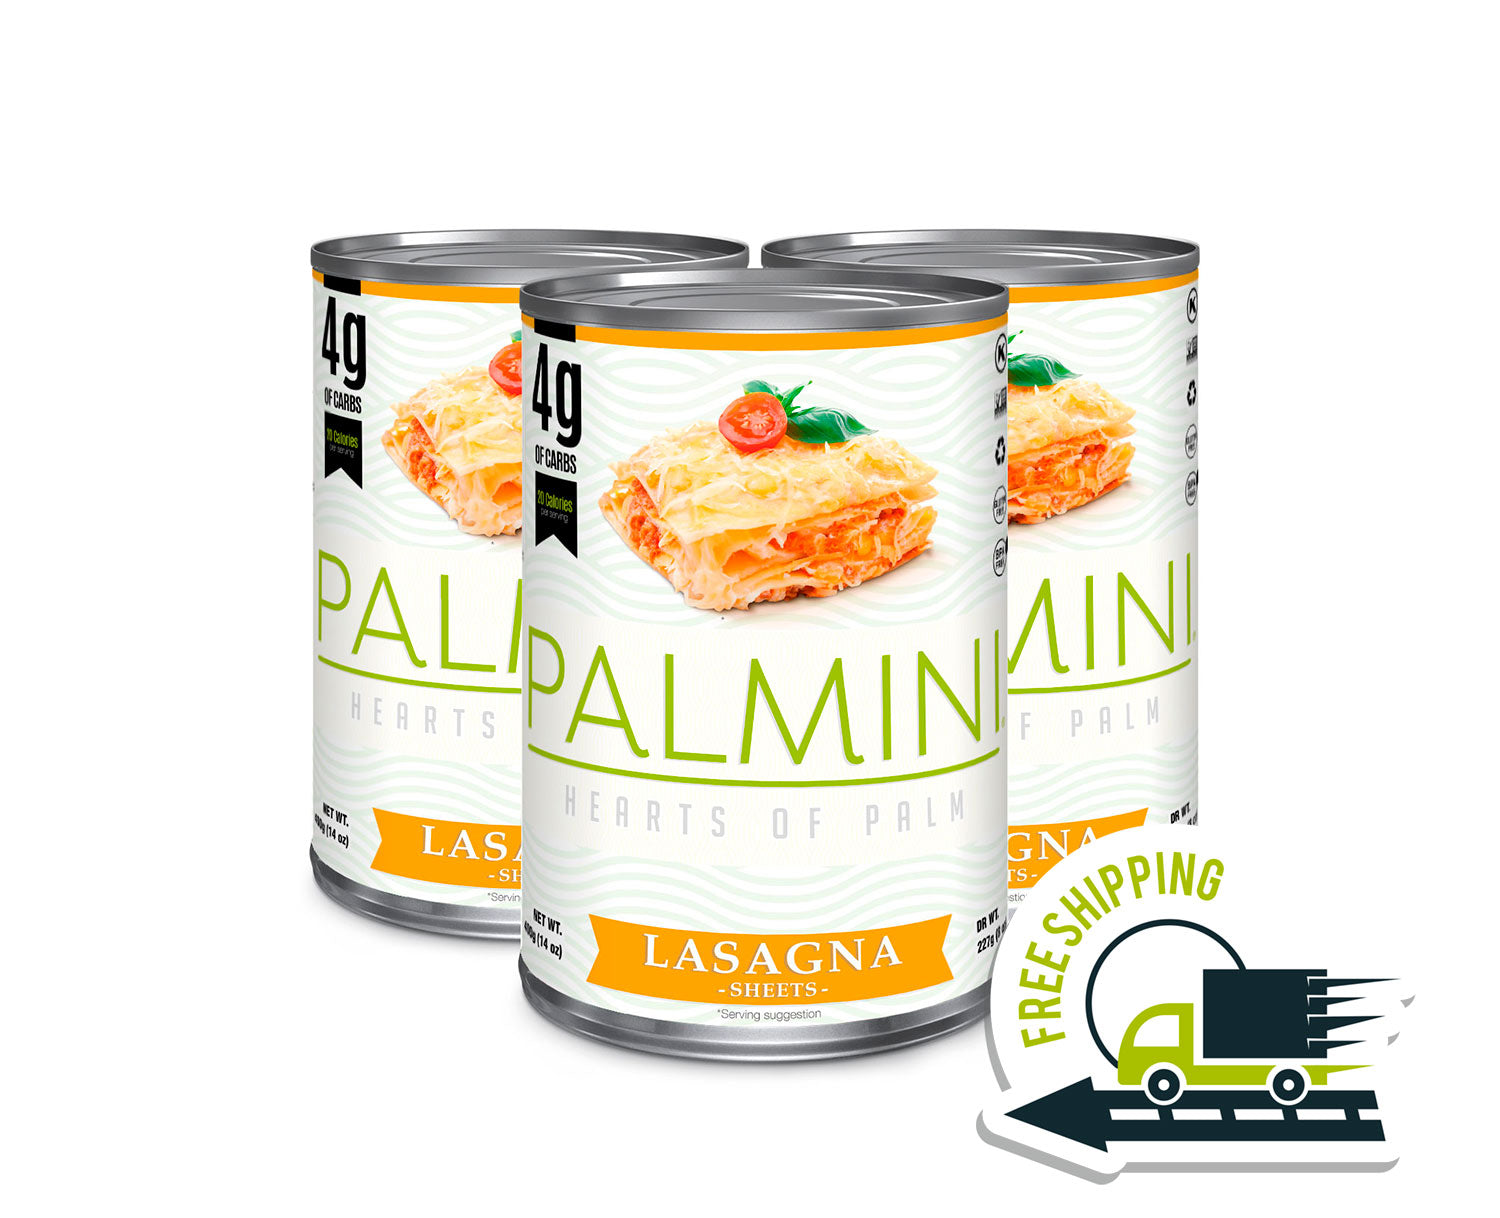 Palmini Lasagna | 3 Unit Case | 14 Oz. Net|